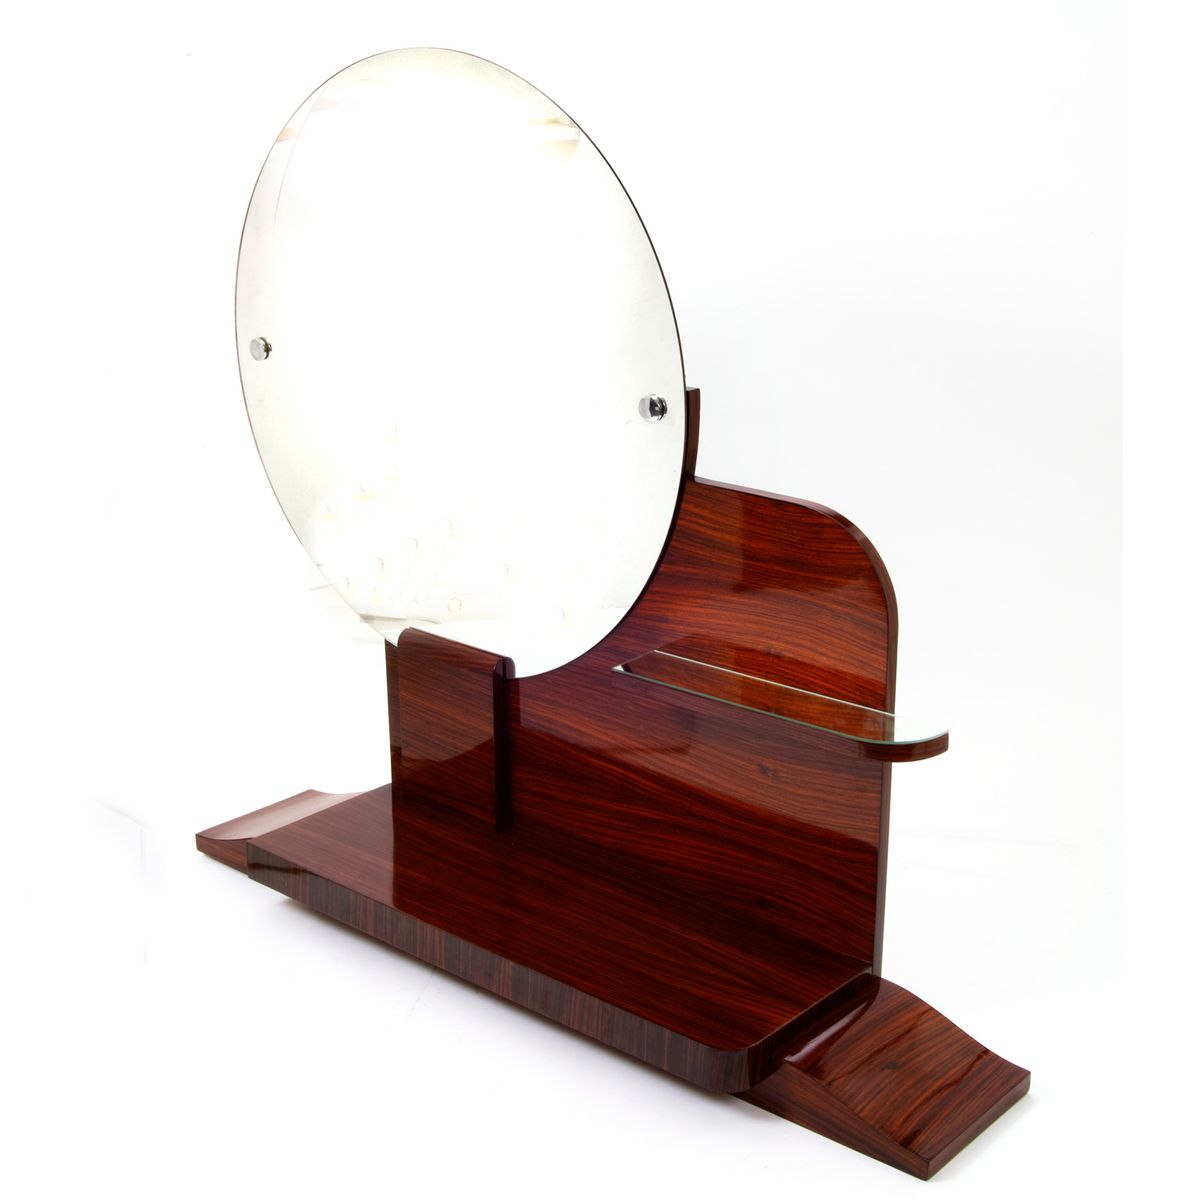 Round art deco mirror with shelves for sale at pamono for Miroir art deco